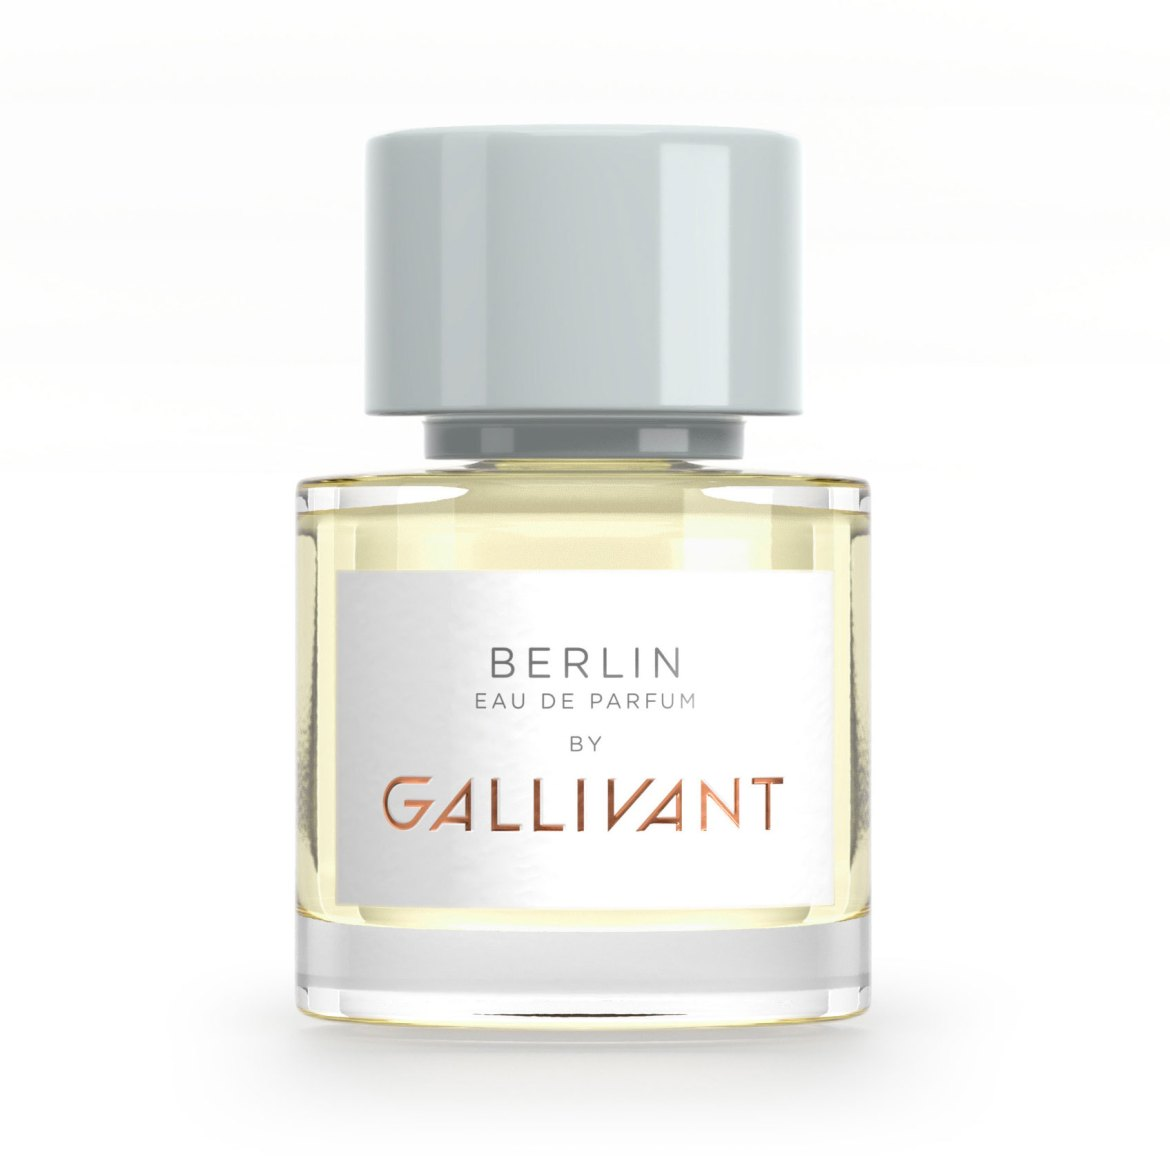 GALLIVANT Berlin eau de parfum at Uncommon Finds